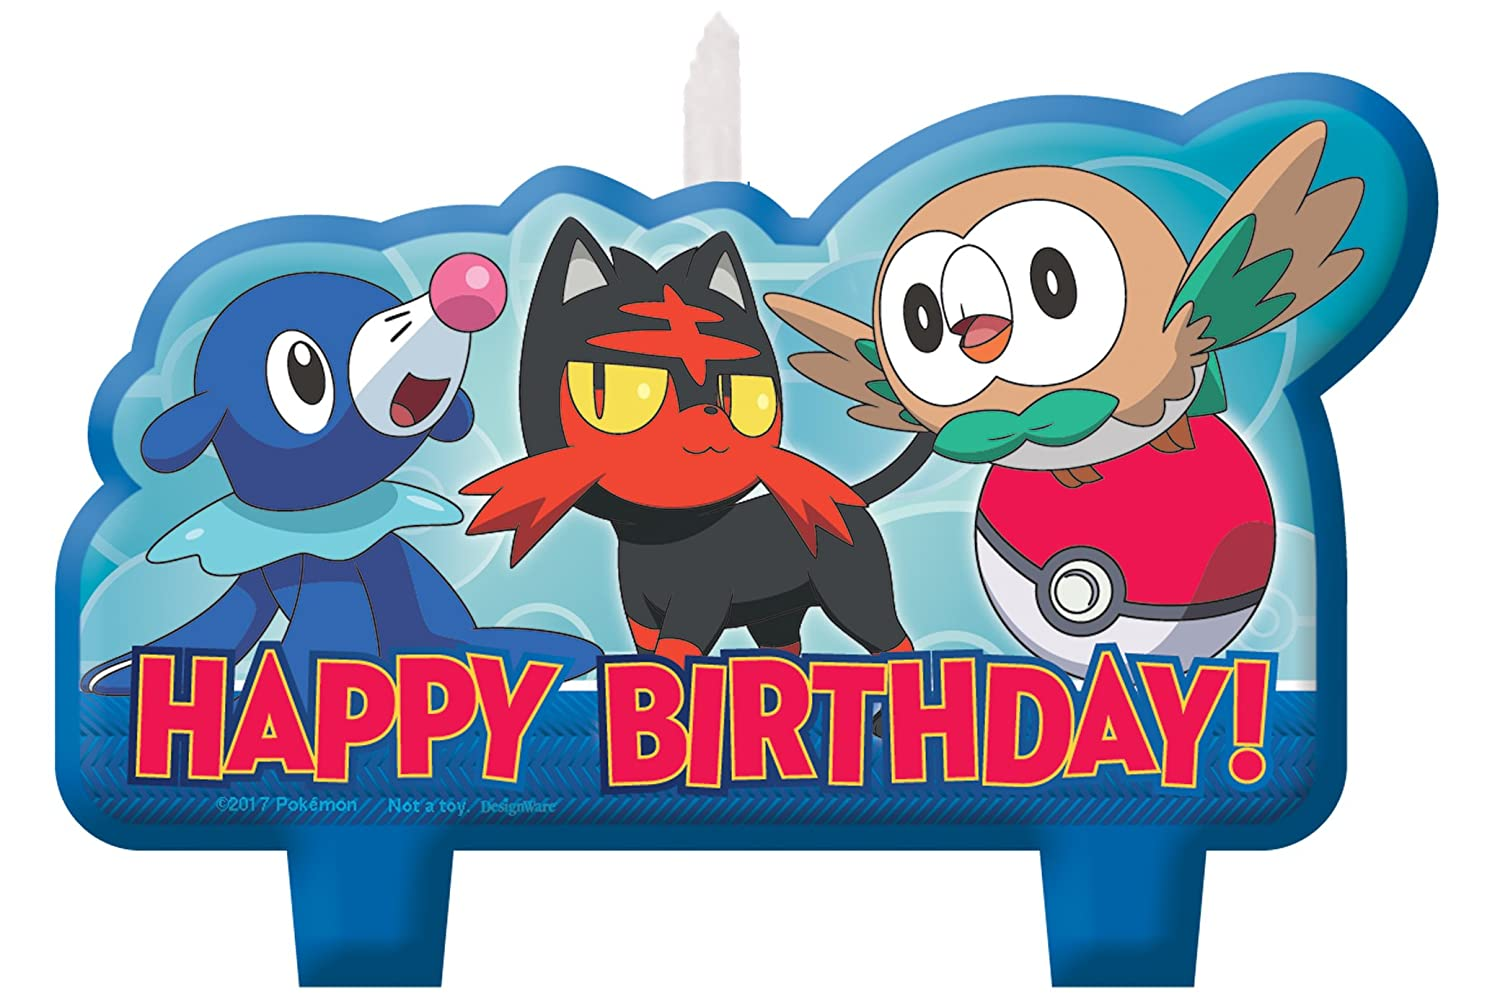 Amscan 171859 Pokemon Birthday Candle Set, Multicolor, Standard